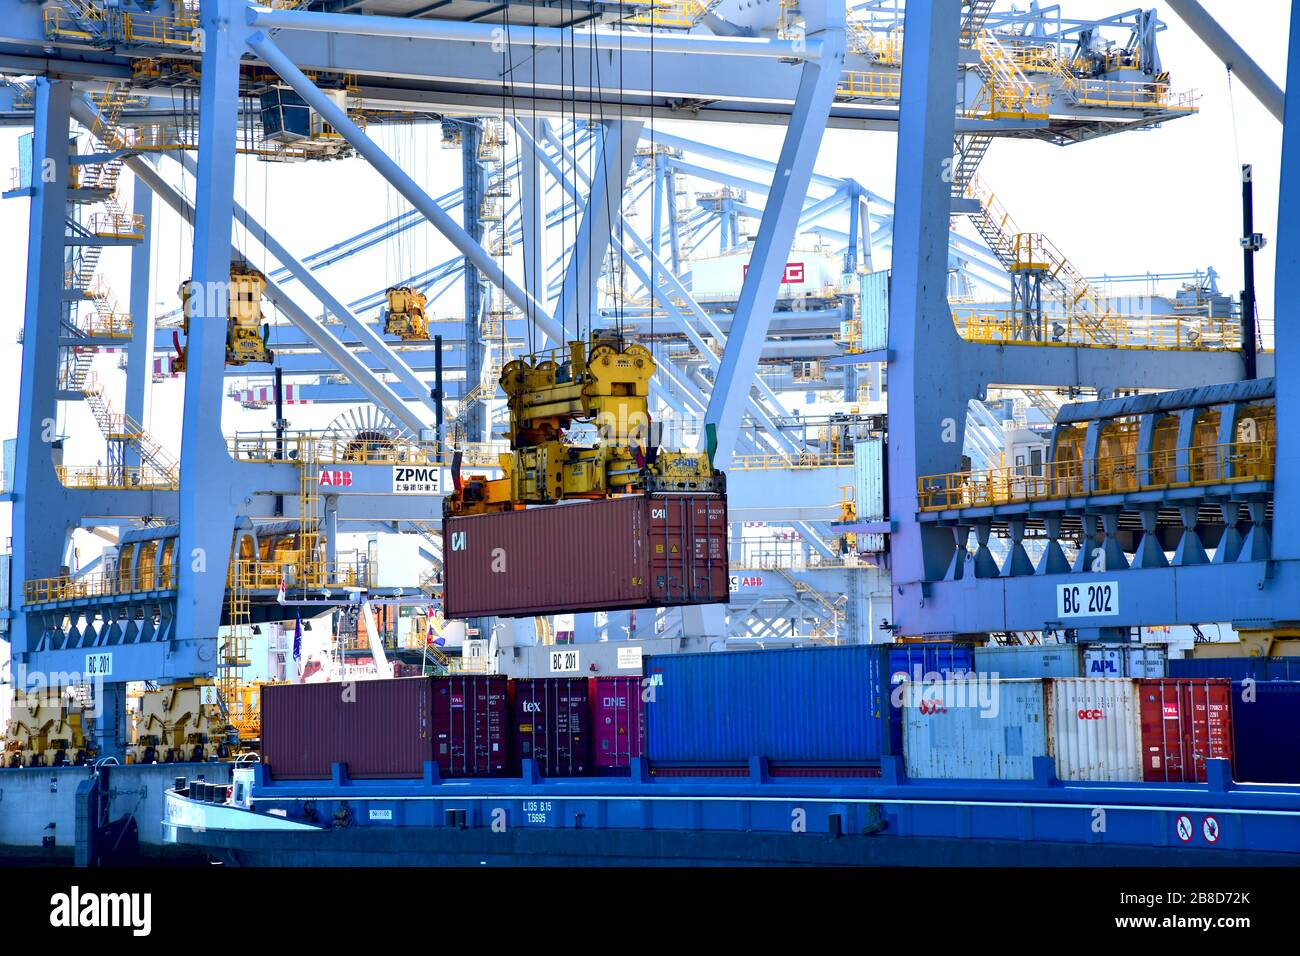 Rotterdam, The Netherlands - August 2019; image filling view on the inner structure with beams and booms of numerous gantry cranes moving containers i Stock Photo